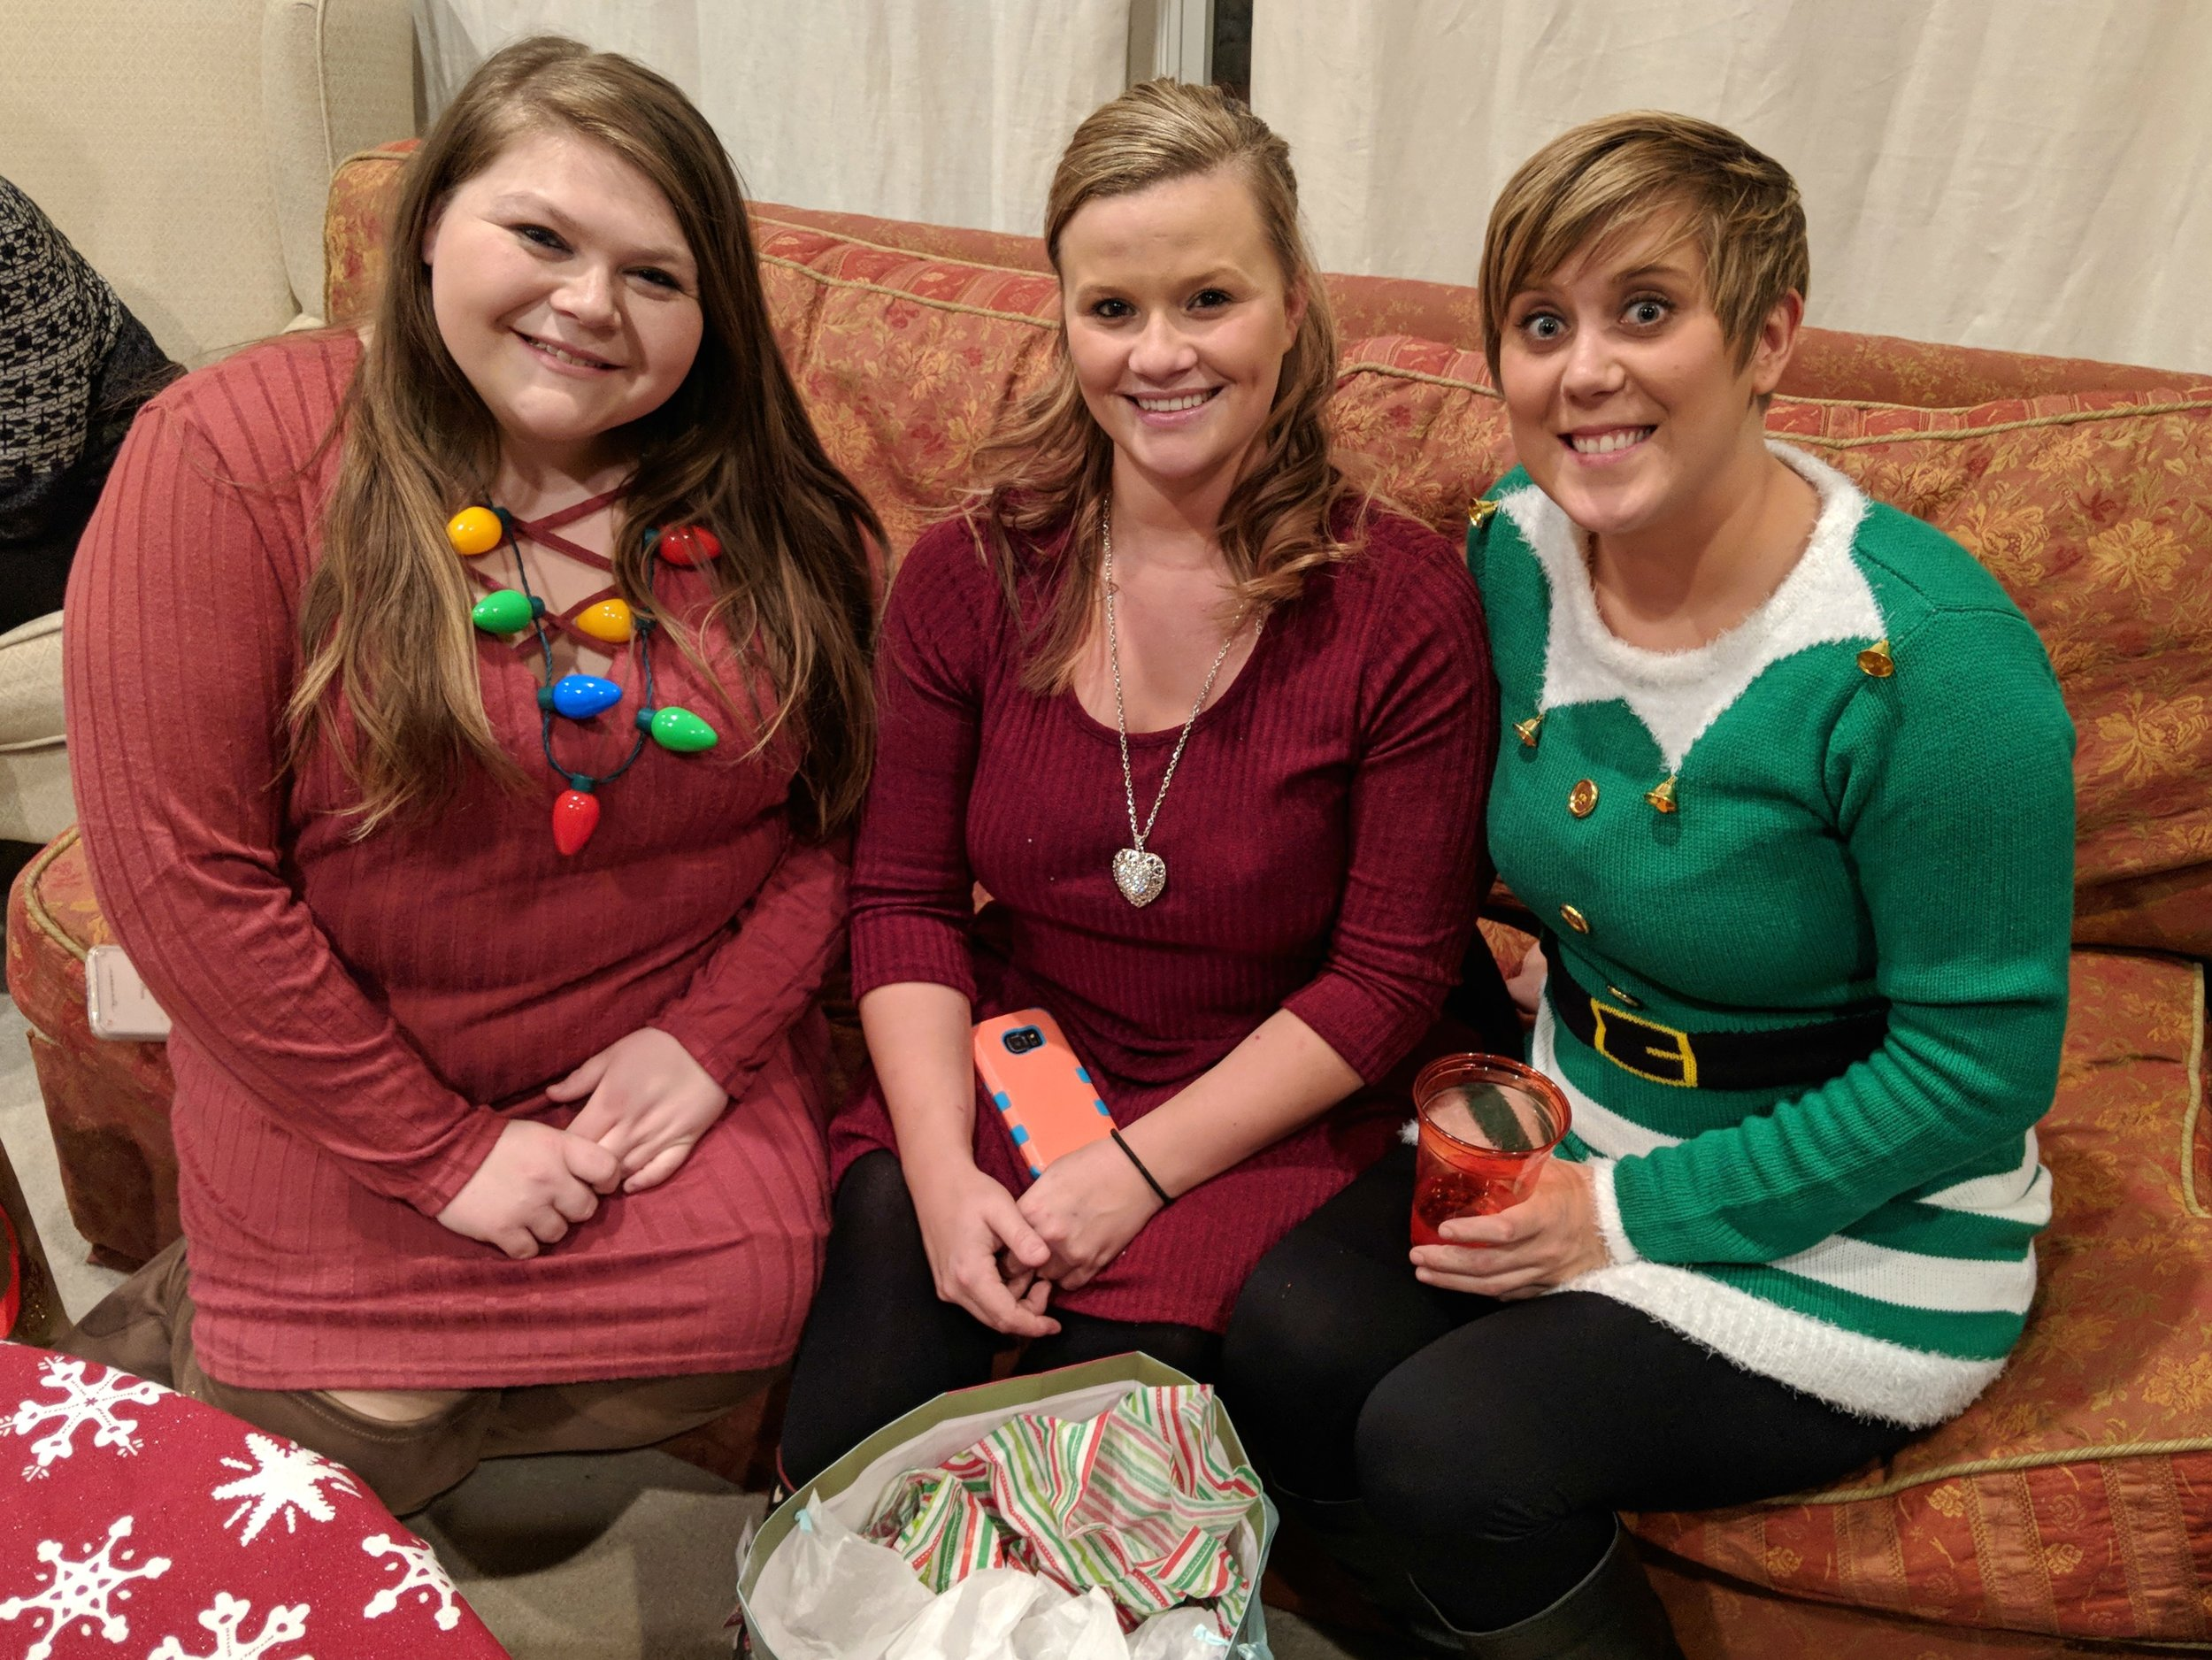 Morgan_Jessica_Heather_Edit_HolidayParty2017.jpg